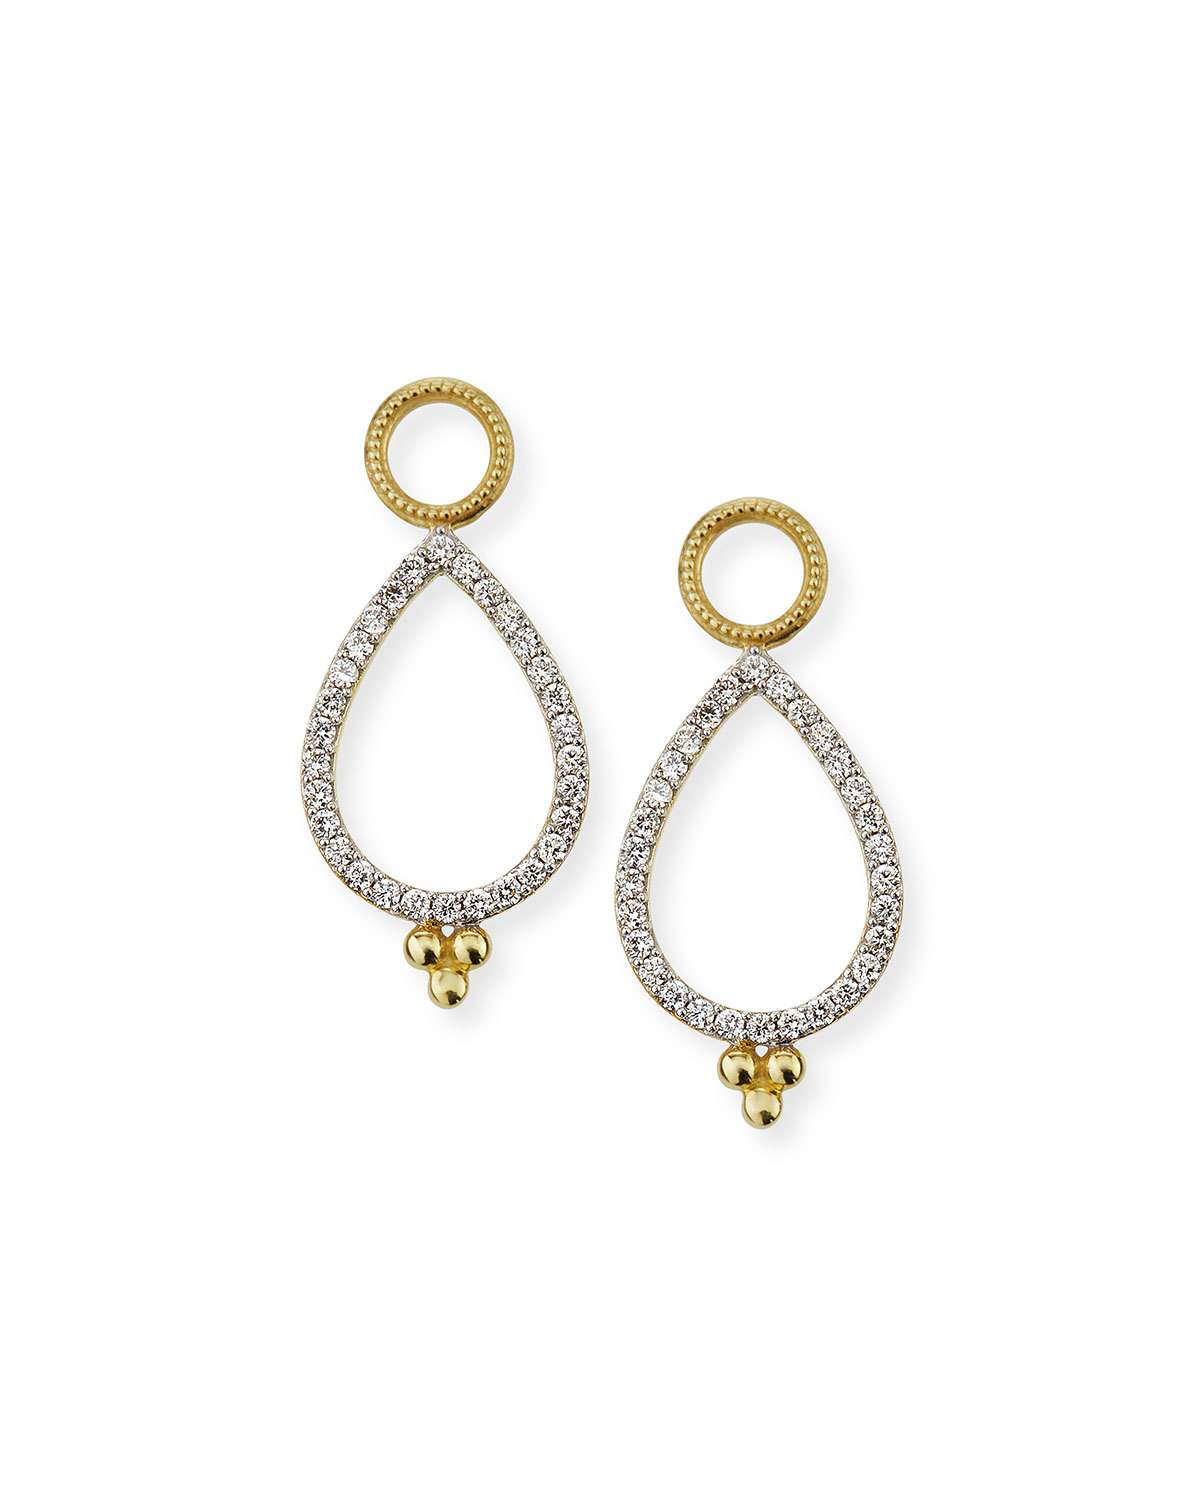 Jude Frances Provence 18K Delicate Open Pear Pave Earring Charms In Gold